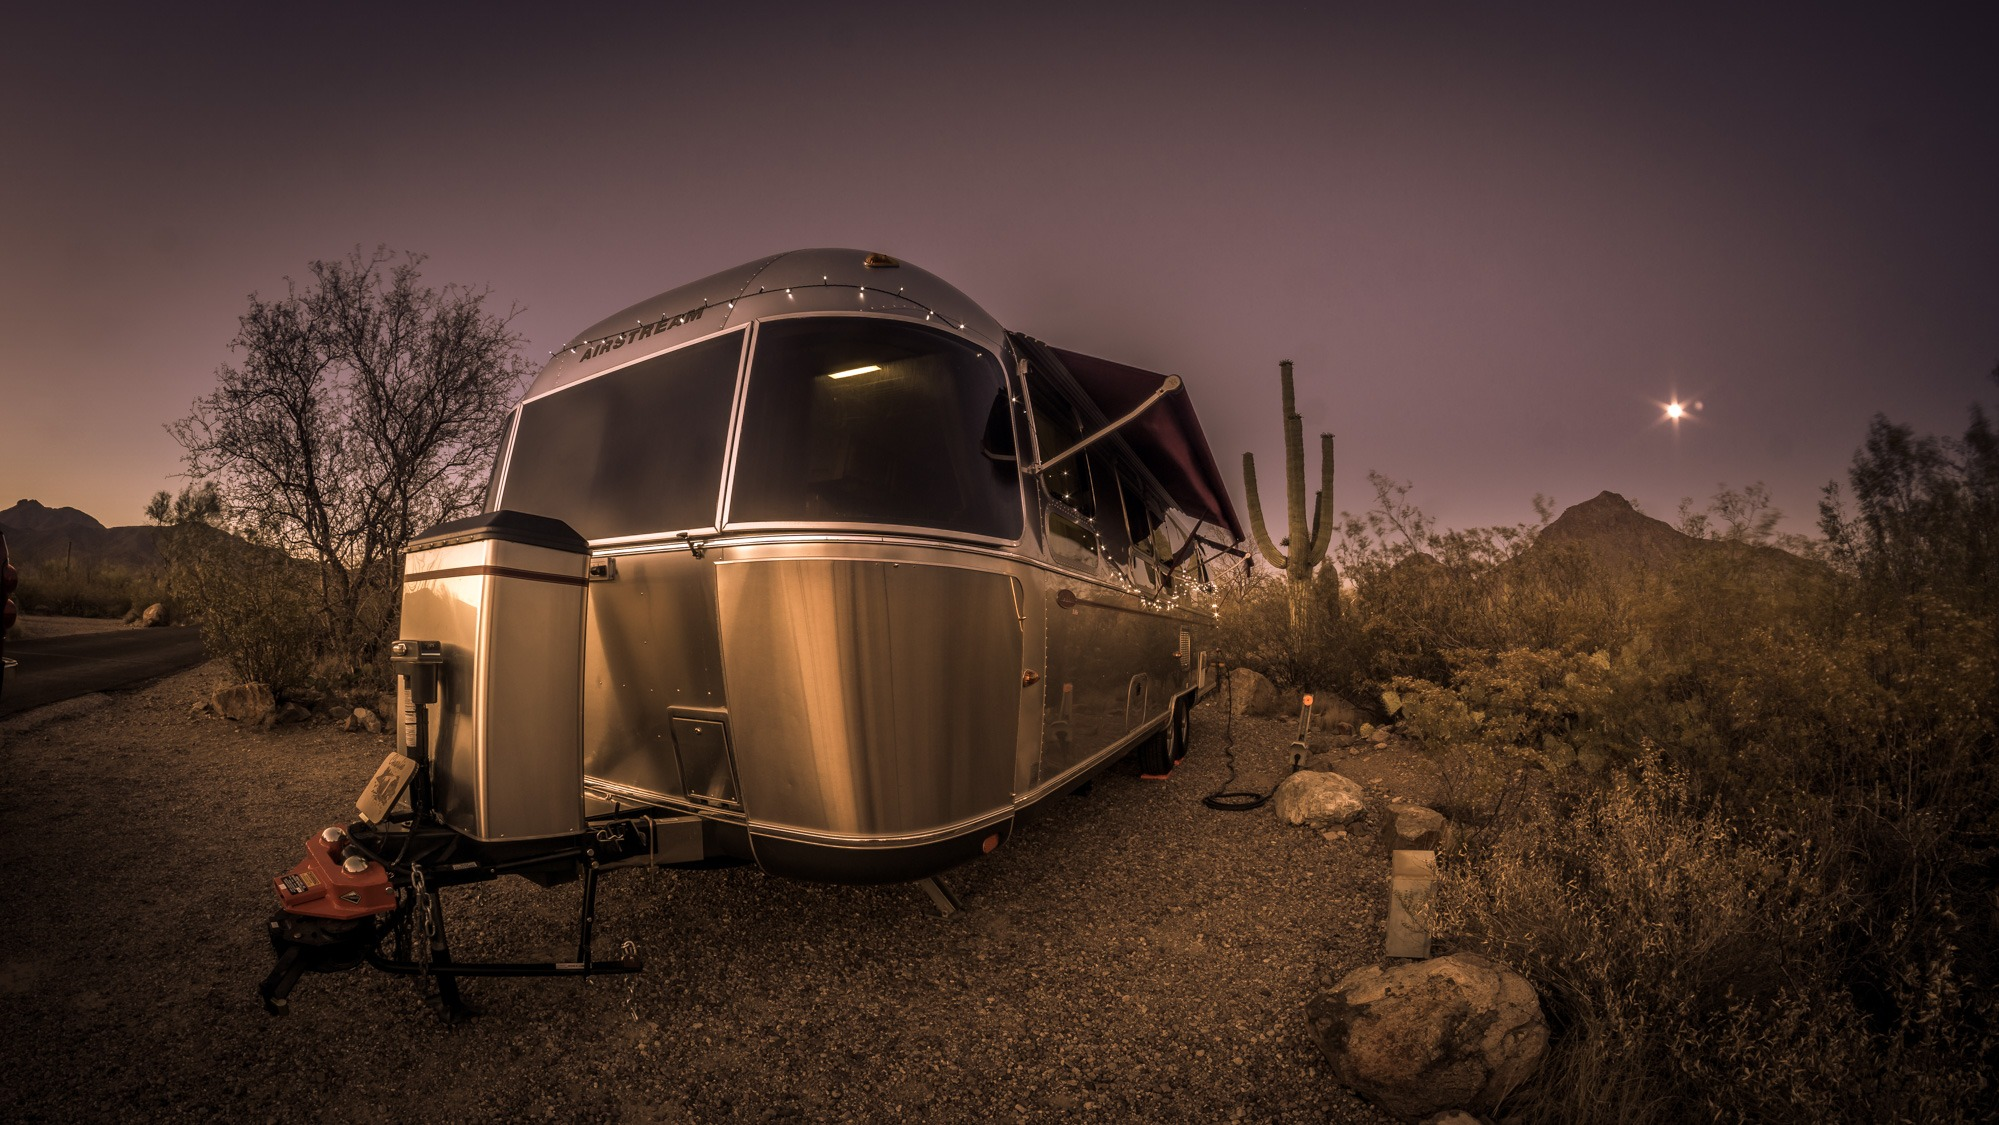 Airstream--www.thethreeyearexperiment.com